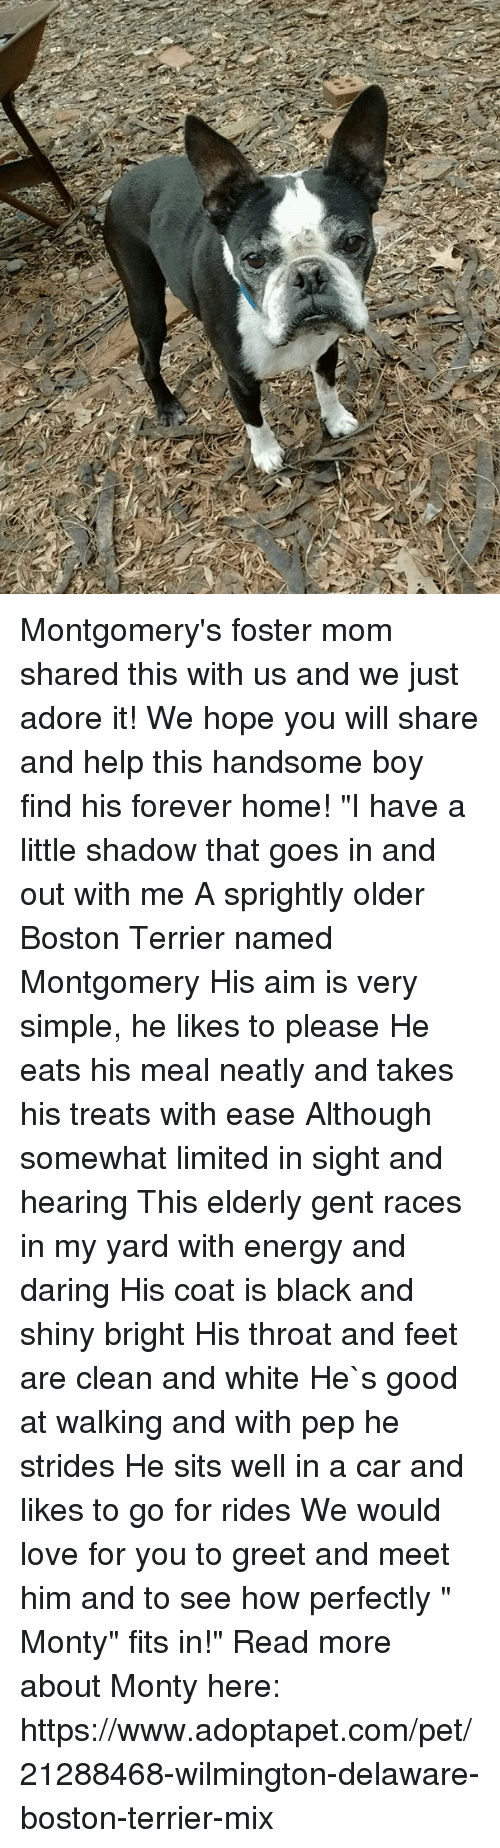 "Energy, Love, and Memes: Montgomery's foster mom shared this with us and we just adore it! We hope you will share and help this handsome boy find his forever home!  ""I have a little shadow that goes in and out with me  A sprightly older Boston Terrier named Montgomery His aim is very simple, he likes to please He eats his meal neatly and takes his treats with ease Although somewhat limited in sight and hearing This elderly gent races in my yard with energy and daring His coat is black and shiny bright His throat and  feet are clean and white He`s good at walking and with pep he strides He sits well in a car and likes to go for rides We would love for you to greet and meet him and to see how perfectly "" Monty""  fits in!"" Read more about Monty here: https://www.adoptapet.com/pet/21288468-wilmington-delaware-boston-terrier-mix"